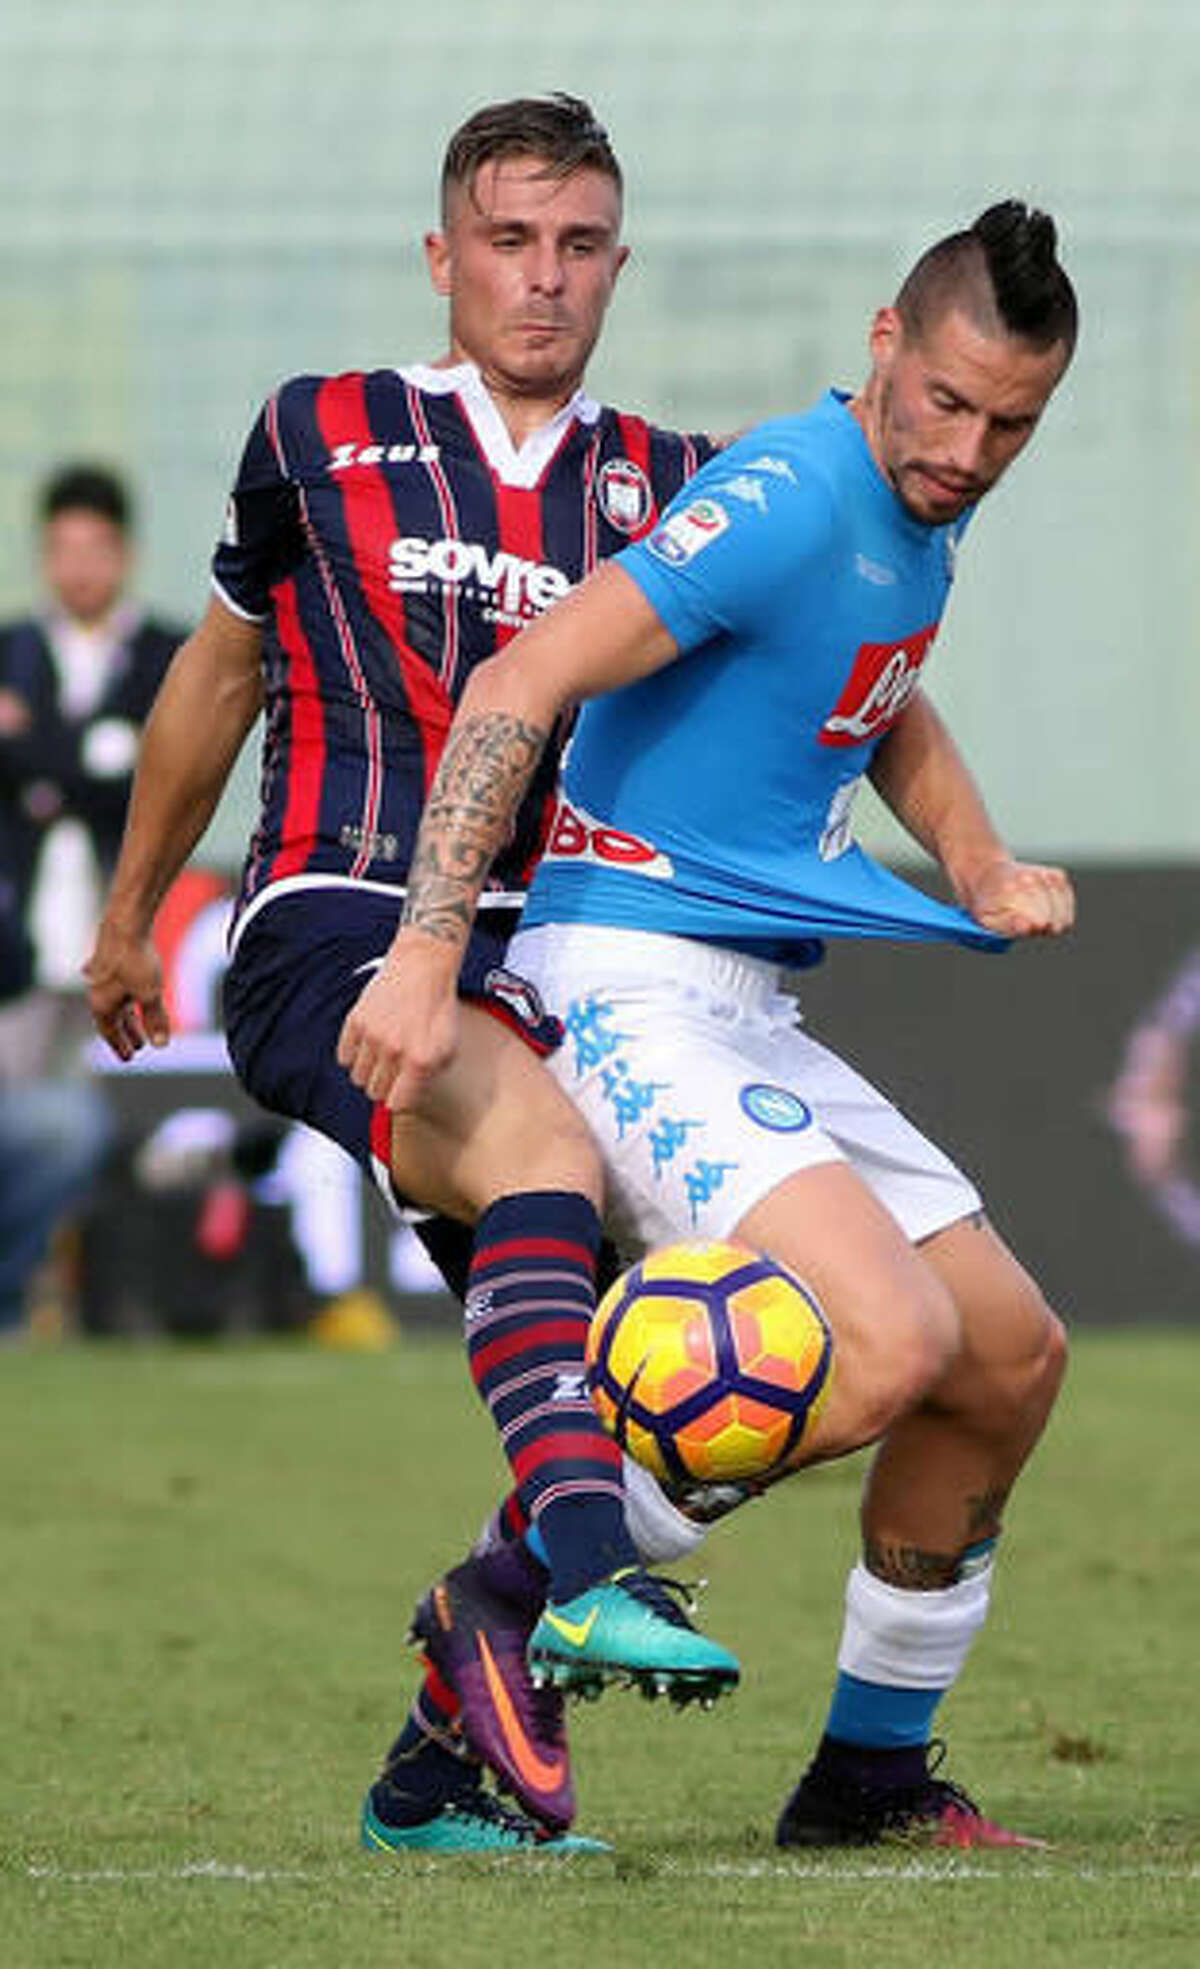 Napoli's Marek Hamsik, right, is challenged during a Serie A soccer match between Crotone and Napoli, in Crotone, Italy, Sunday, Oct. 23,2016. (Albano Anigilletta/ANSA via AP)